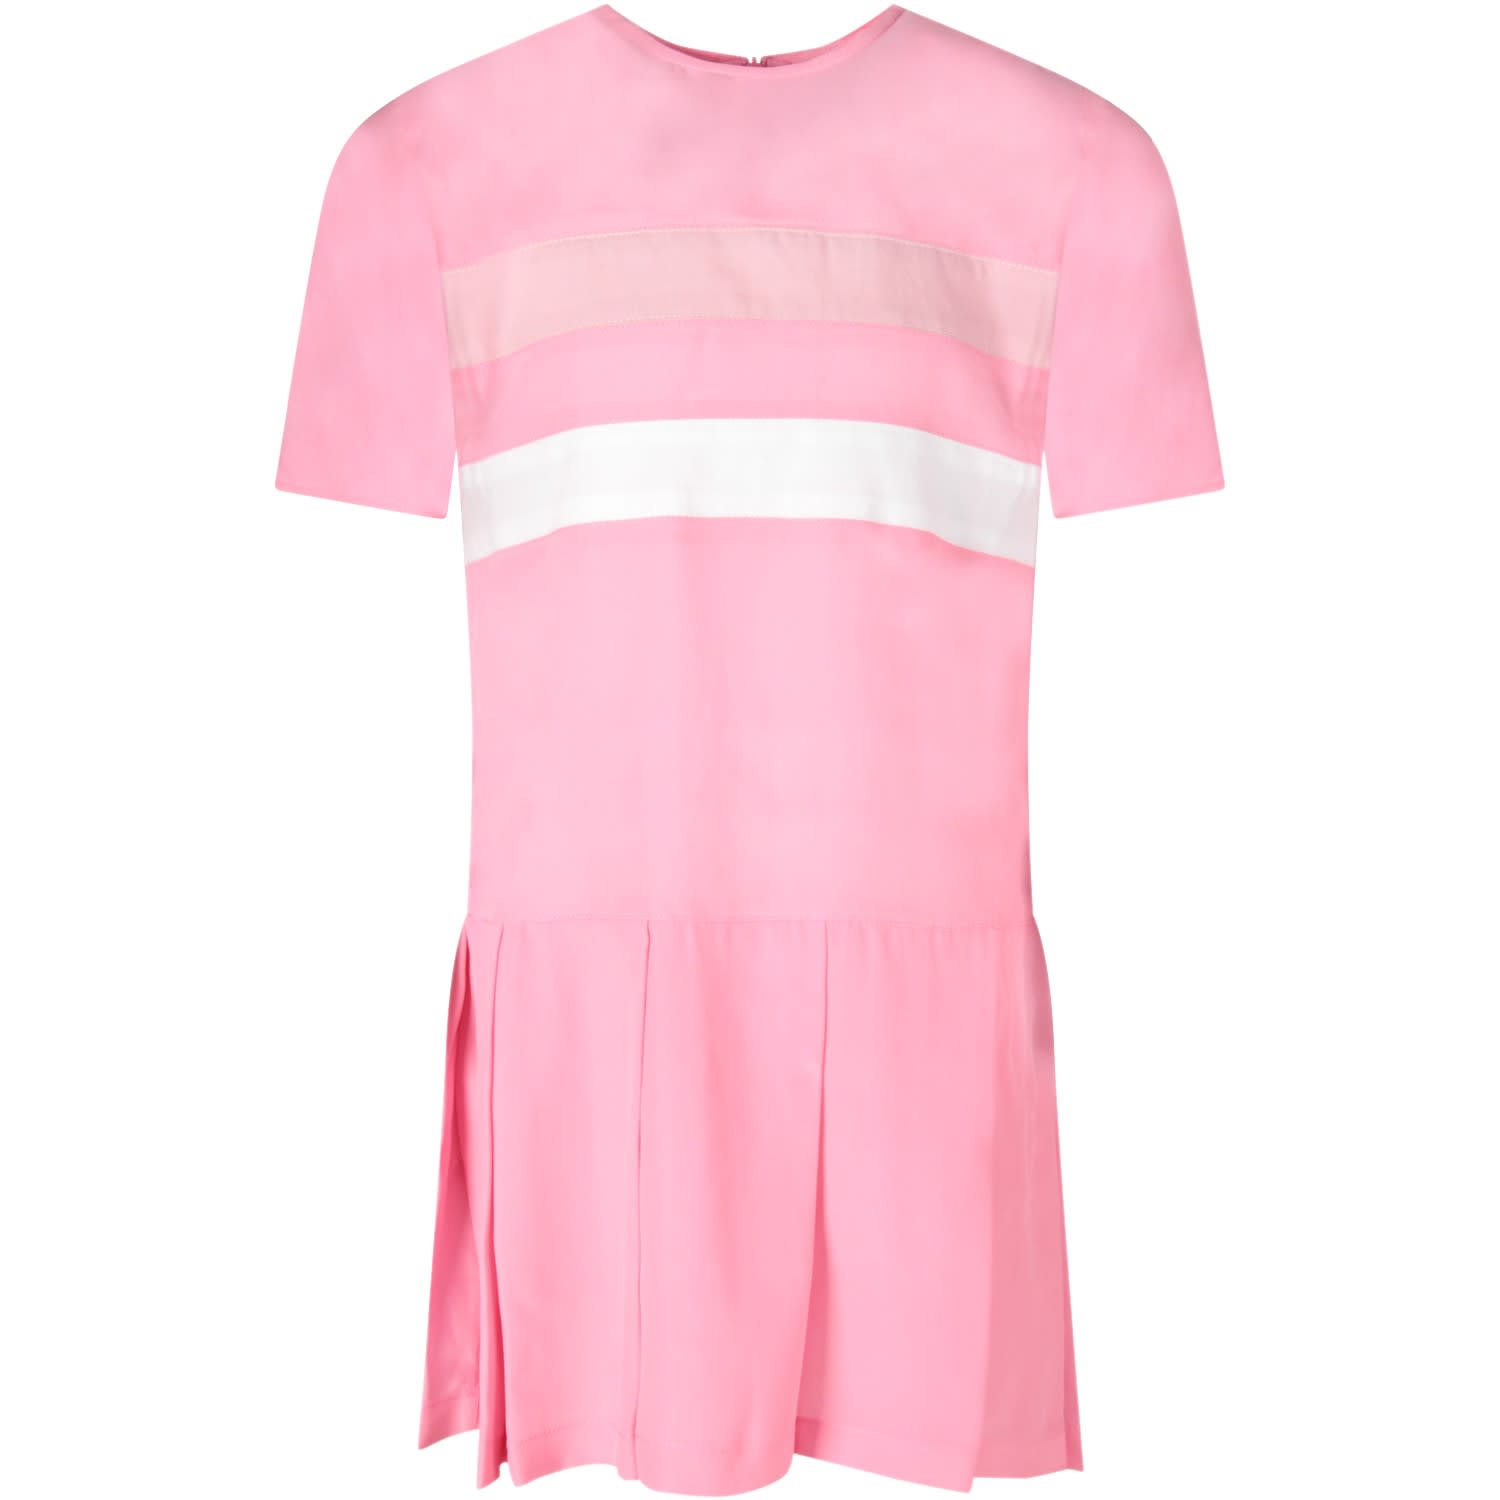 Buy Marni Pink Girl Dress With Stripes online, shop Marni with free shipping